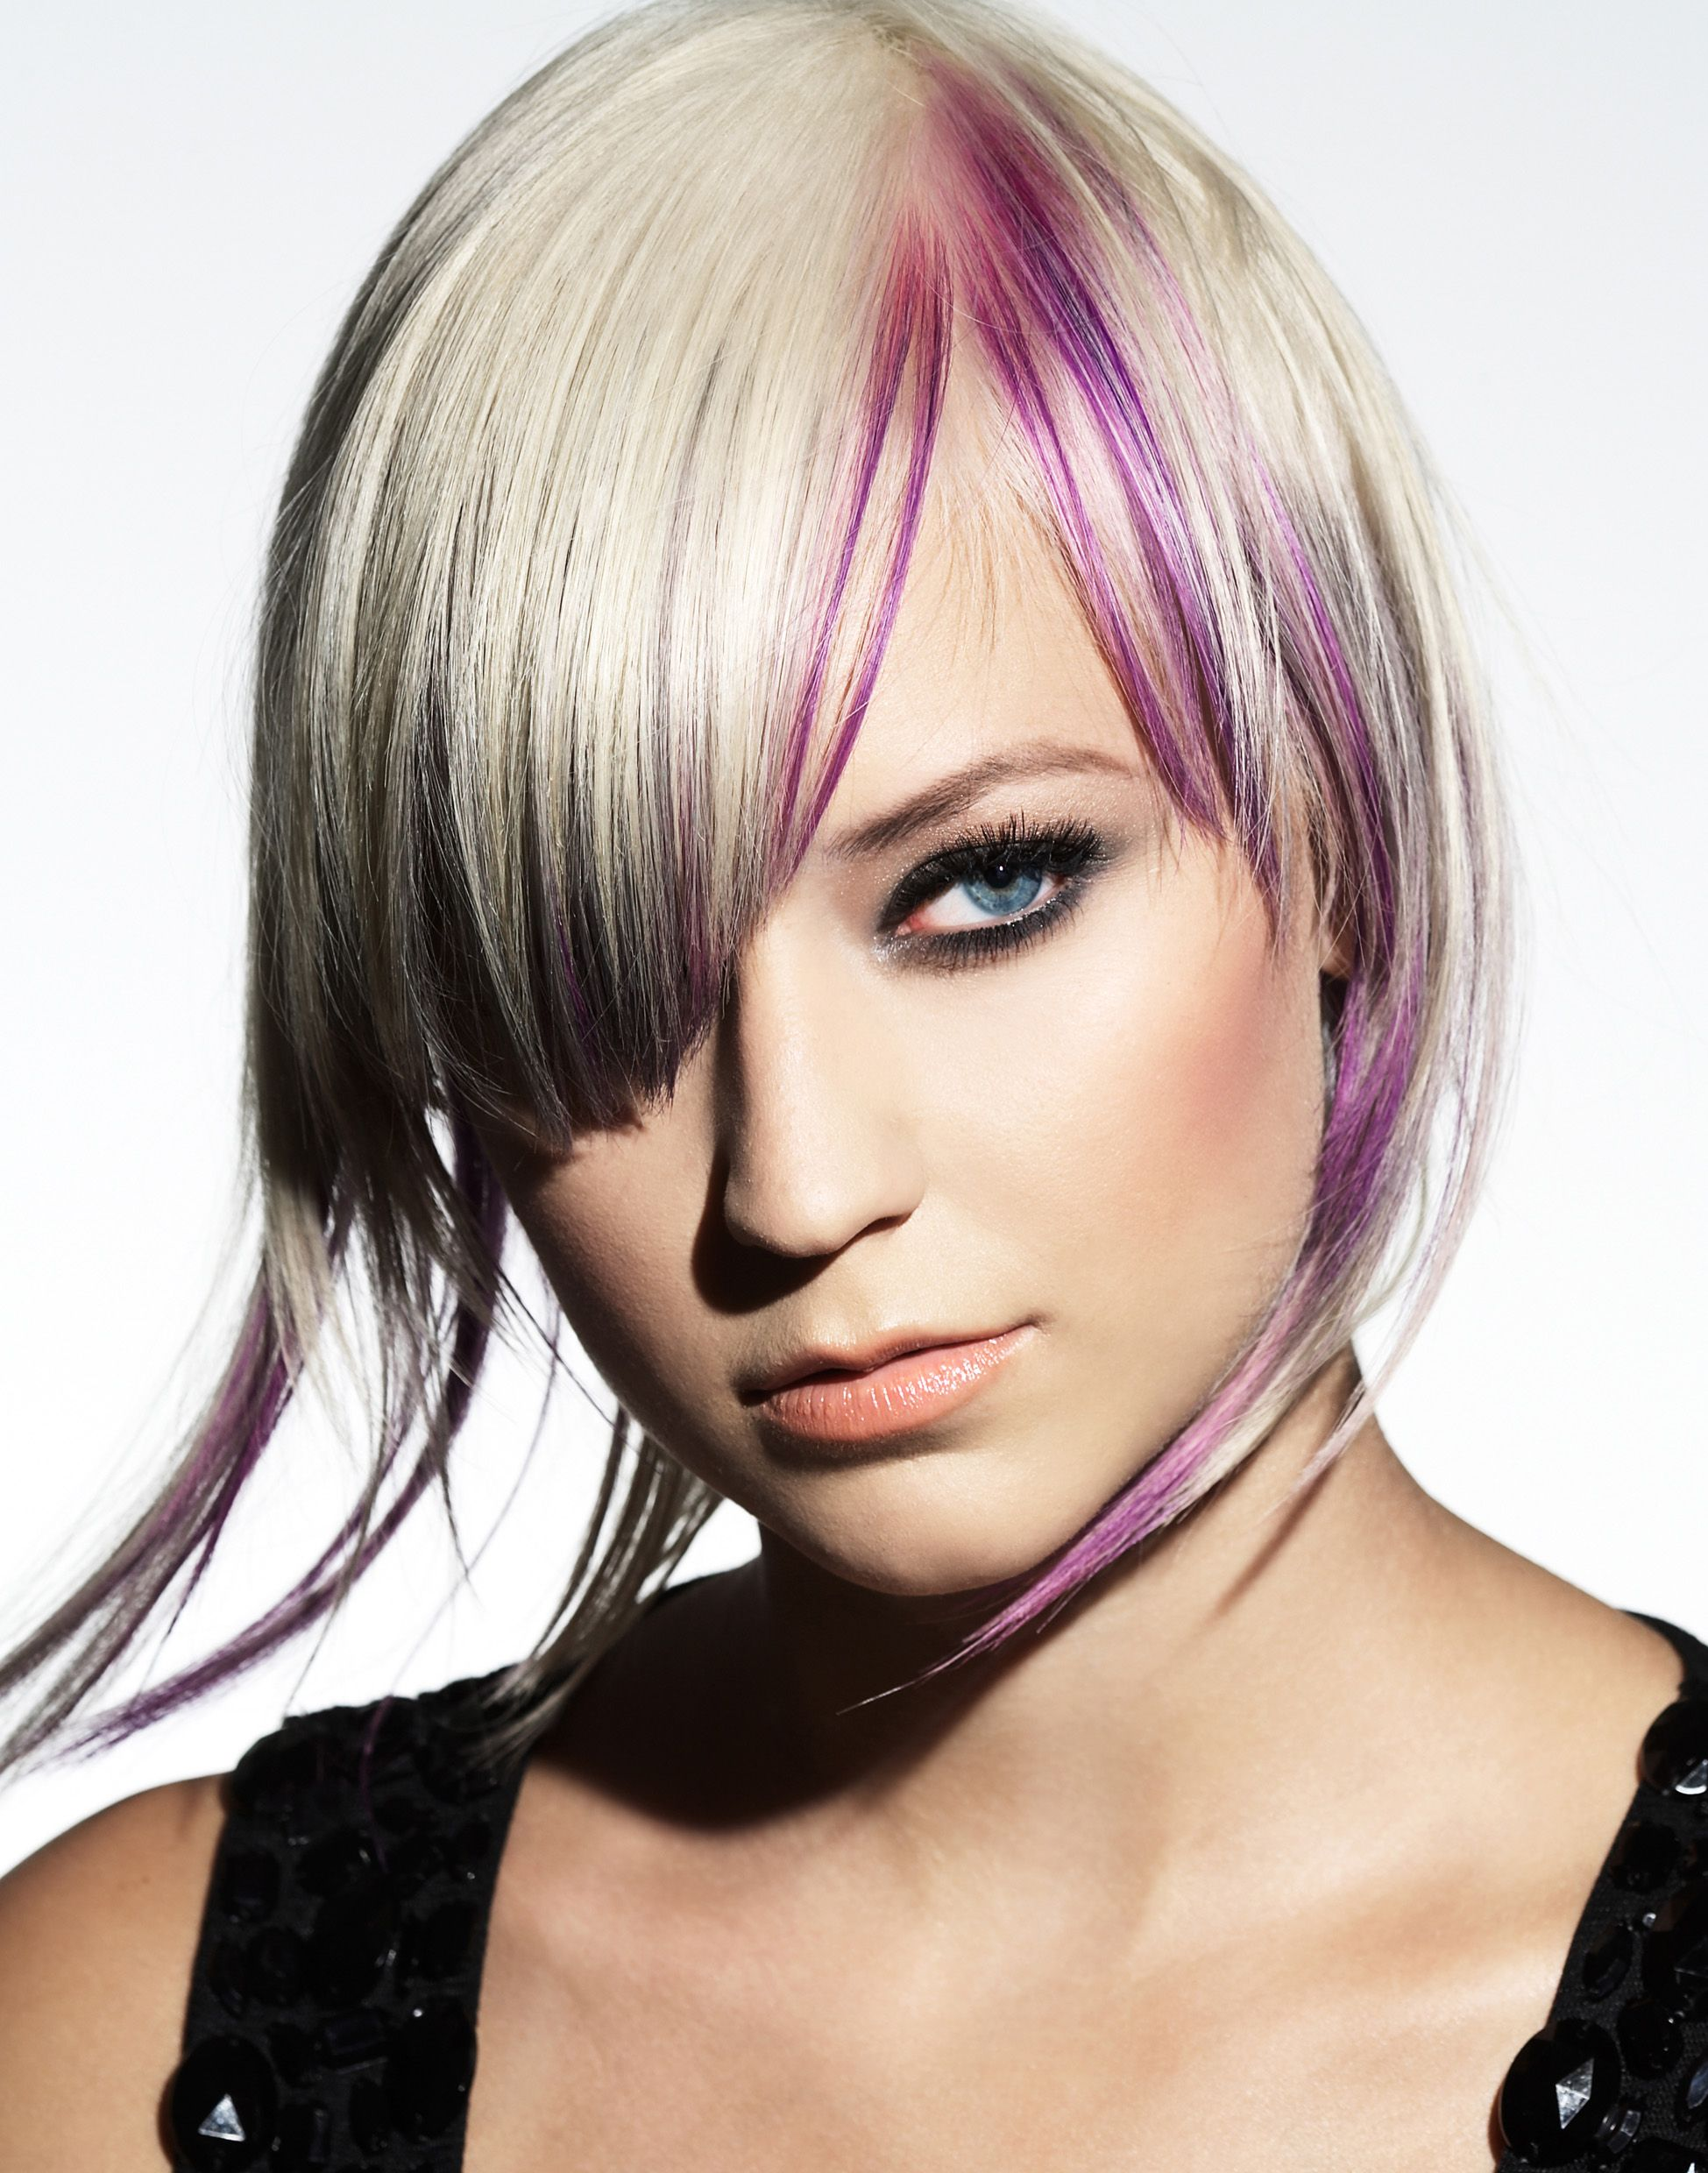 Hair By Lucie Doughty For Paul Mitchell Professional Hair Color Punk Hair Professional Hair Color Hair Styles